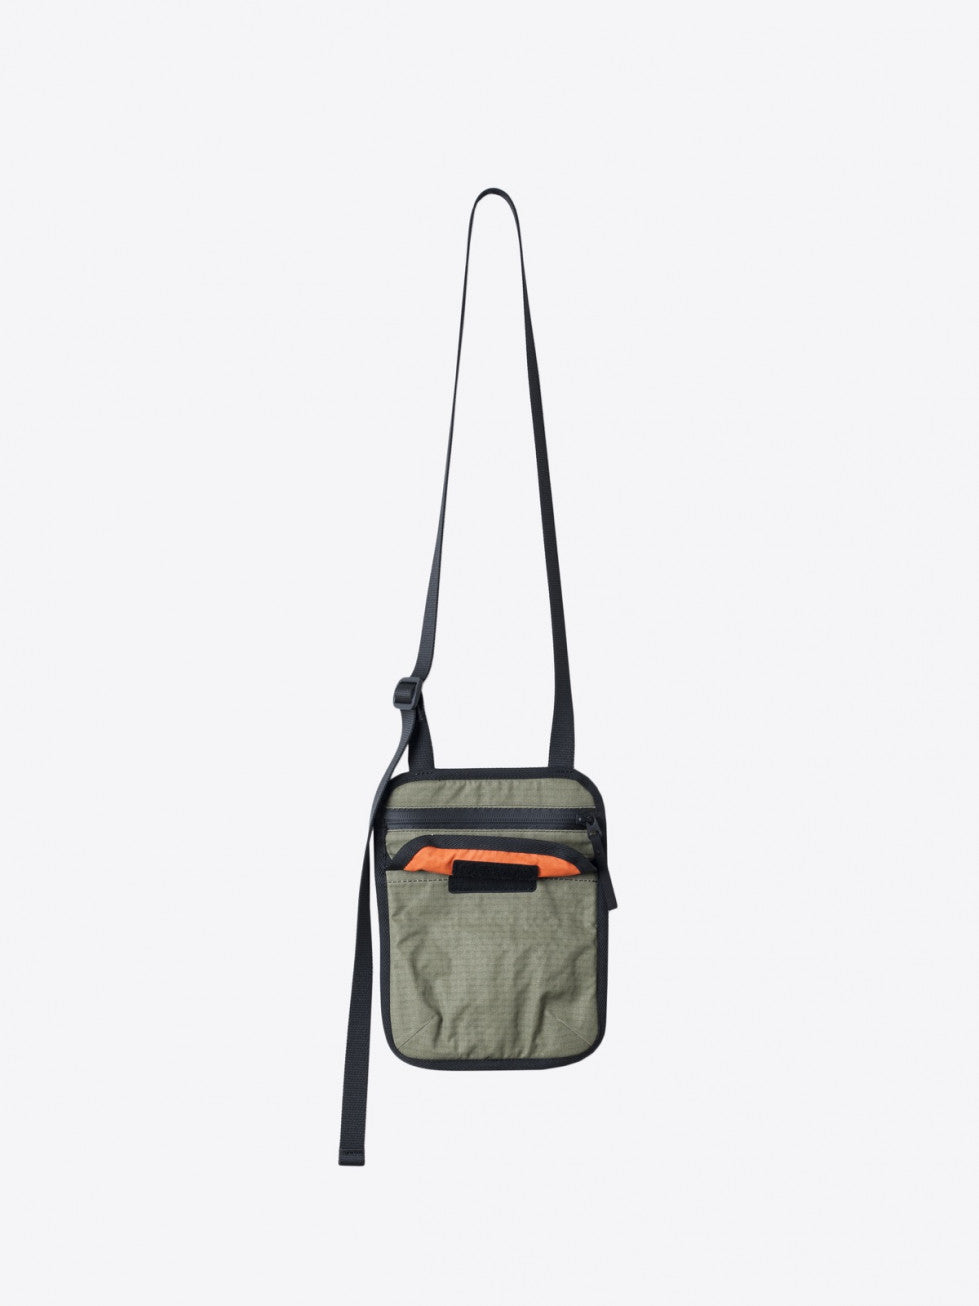 airbag craftworks bag kurt olive